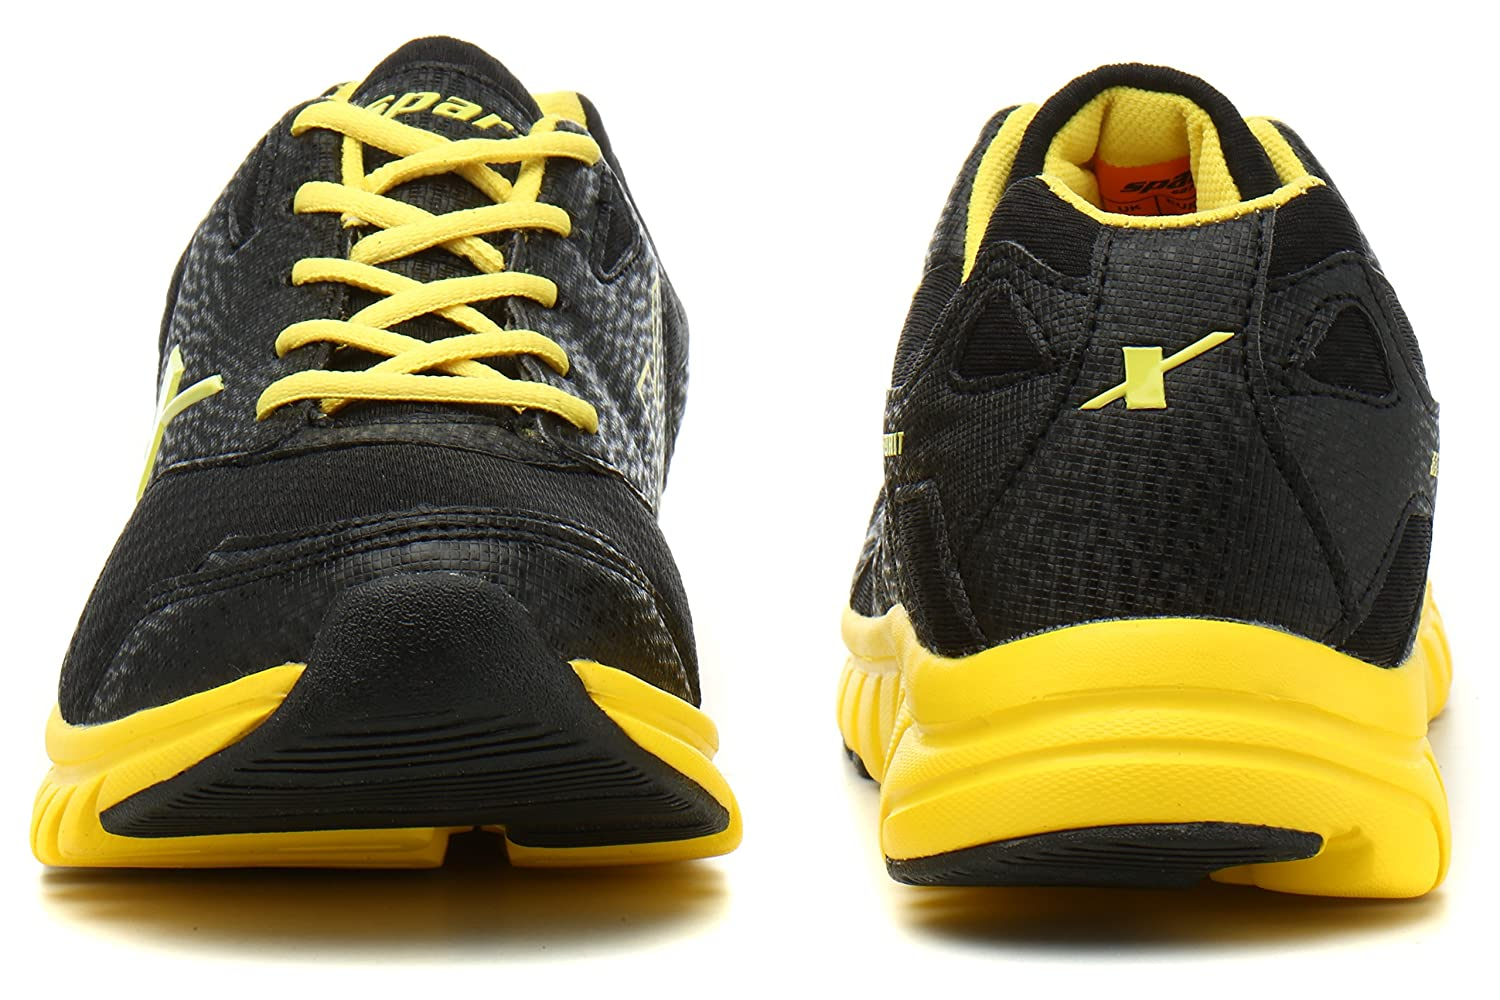 7e019a1bdd6eb5 Sparx Men s Mesh Running Shoes  Buy Online at Low Prices in India -  Amazon.in